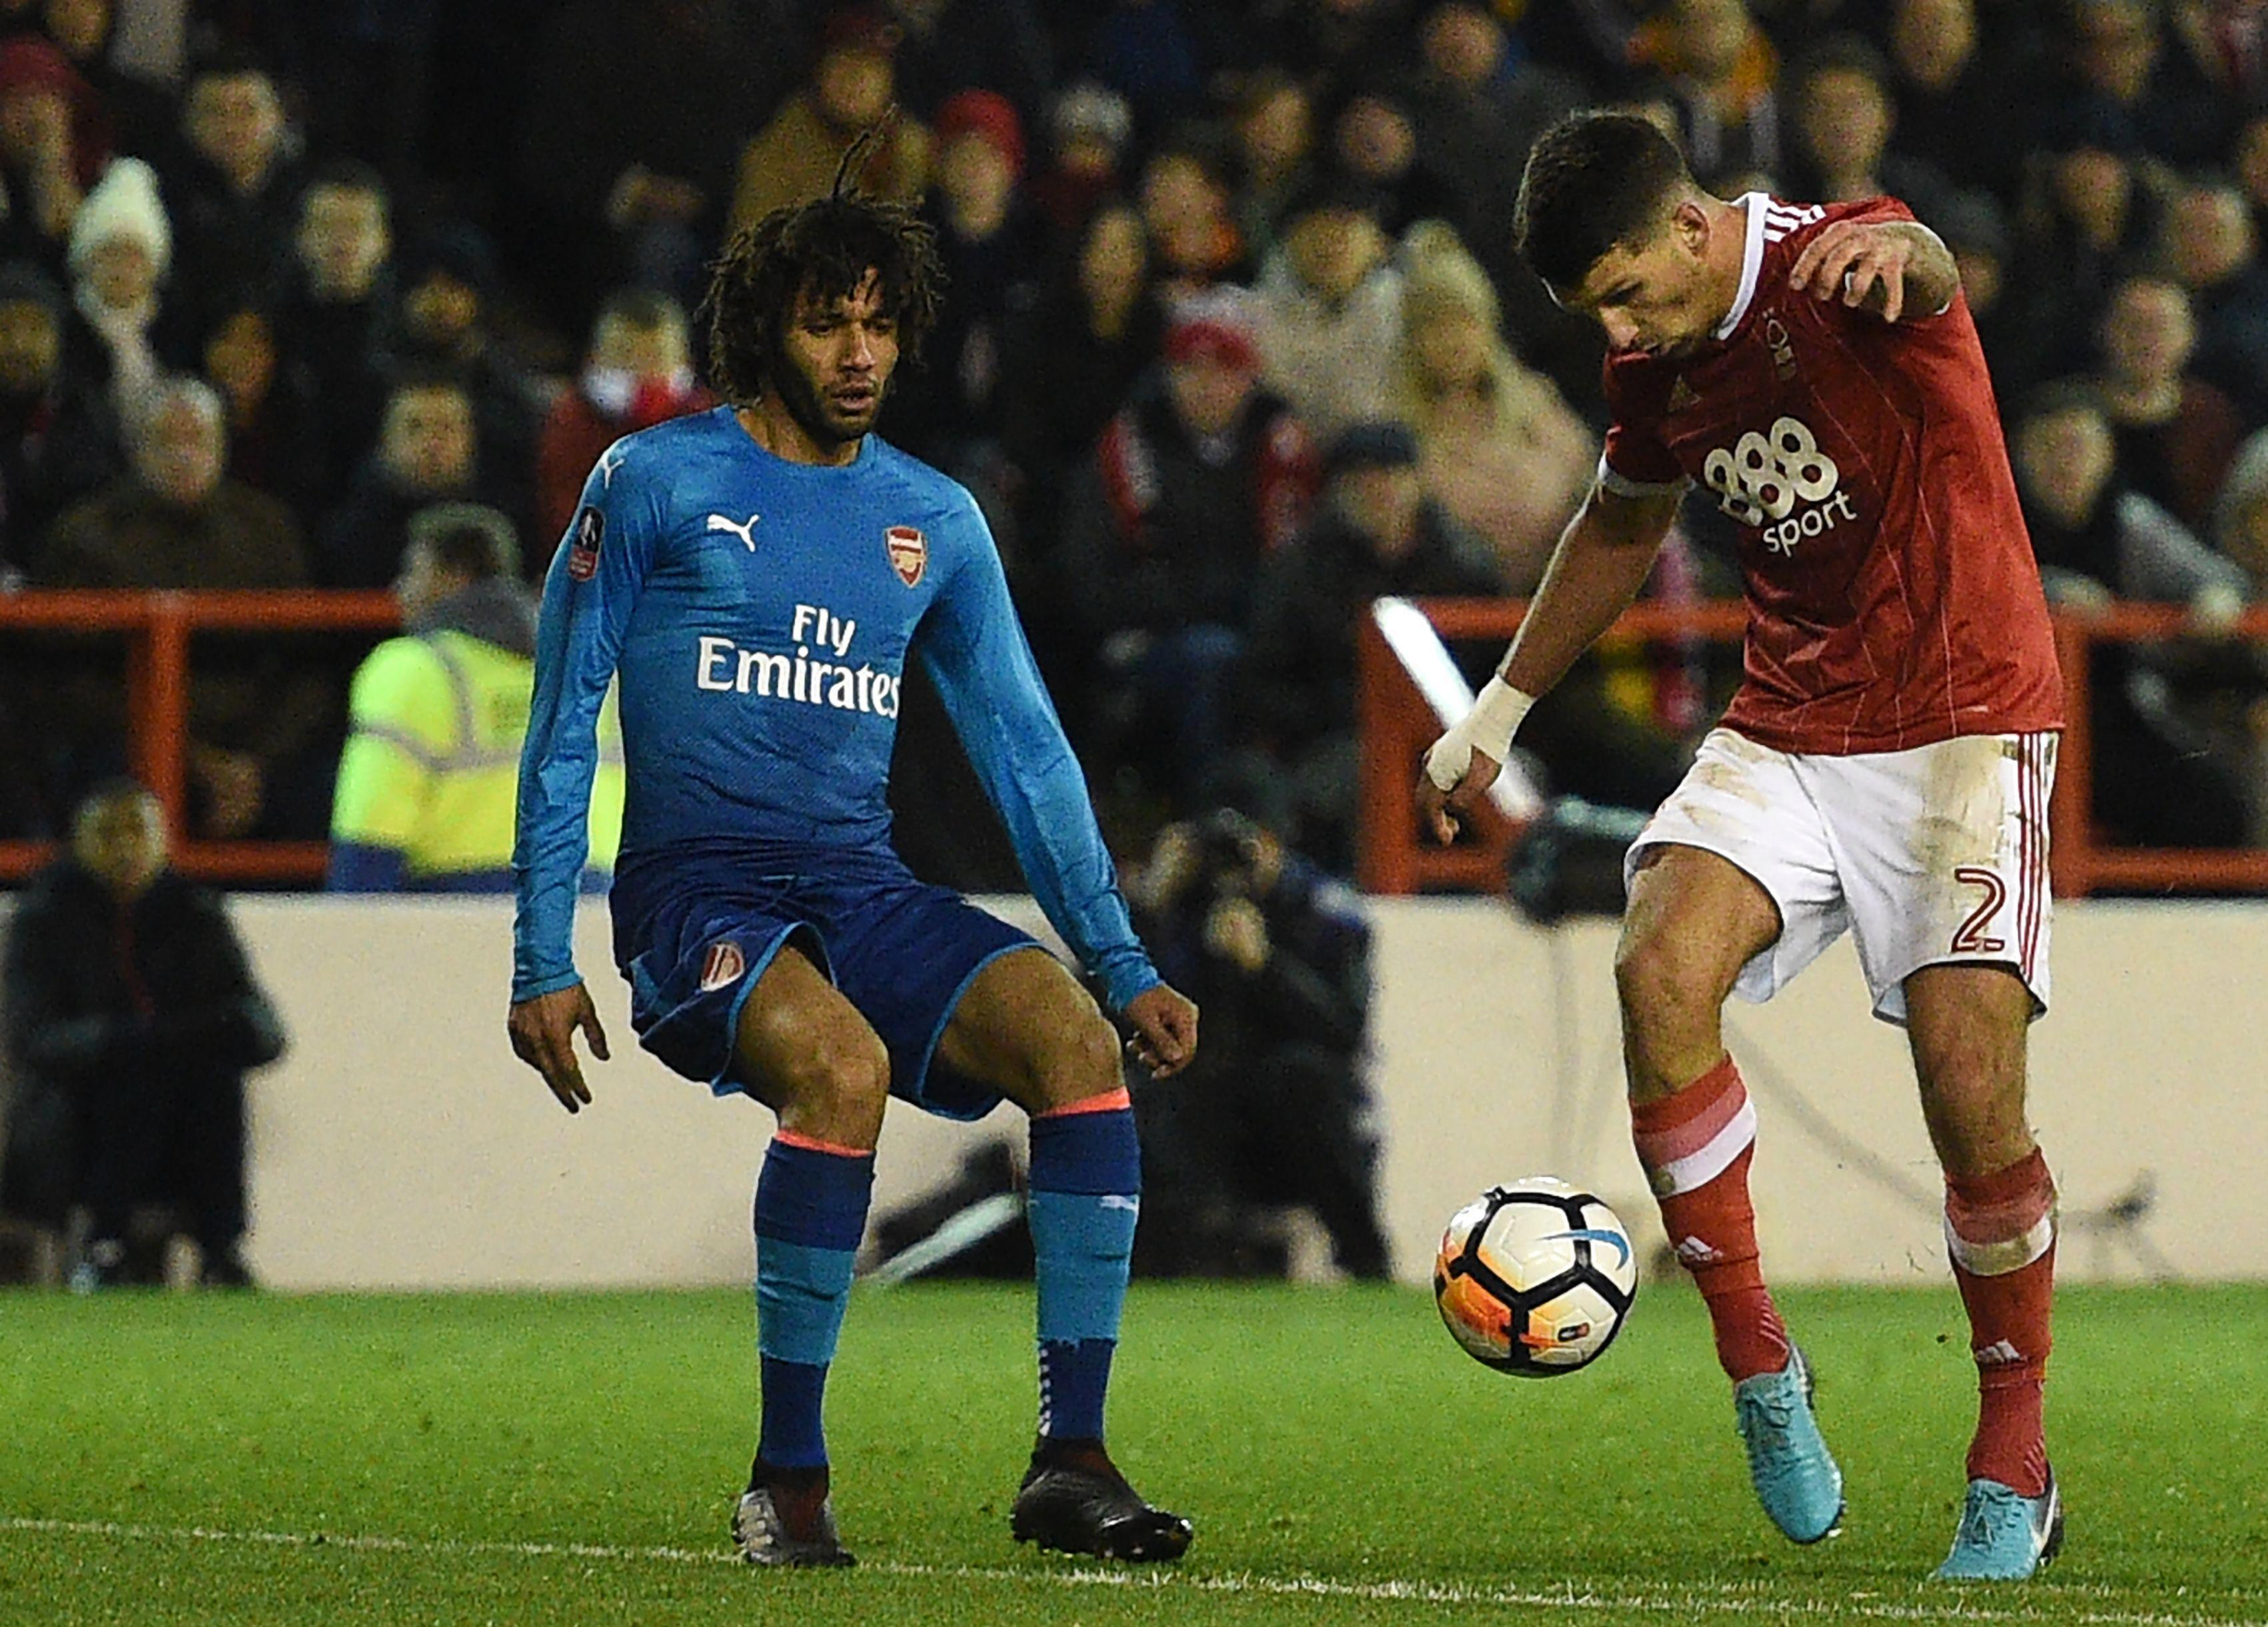 FA Cup highlights: Watch all the goals from Nottingham Forest vs Arsenal, Tottenham vs Wimbledon and Newport vs Leeds